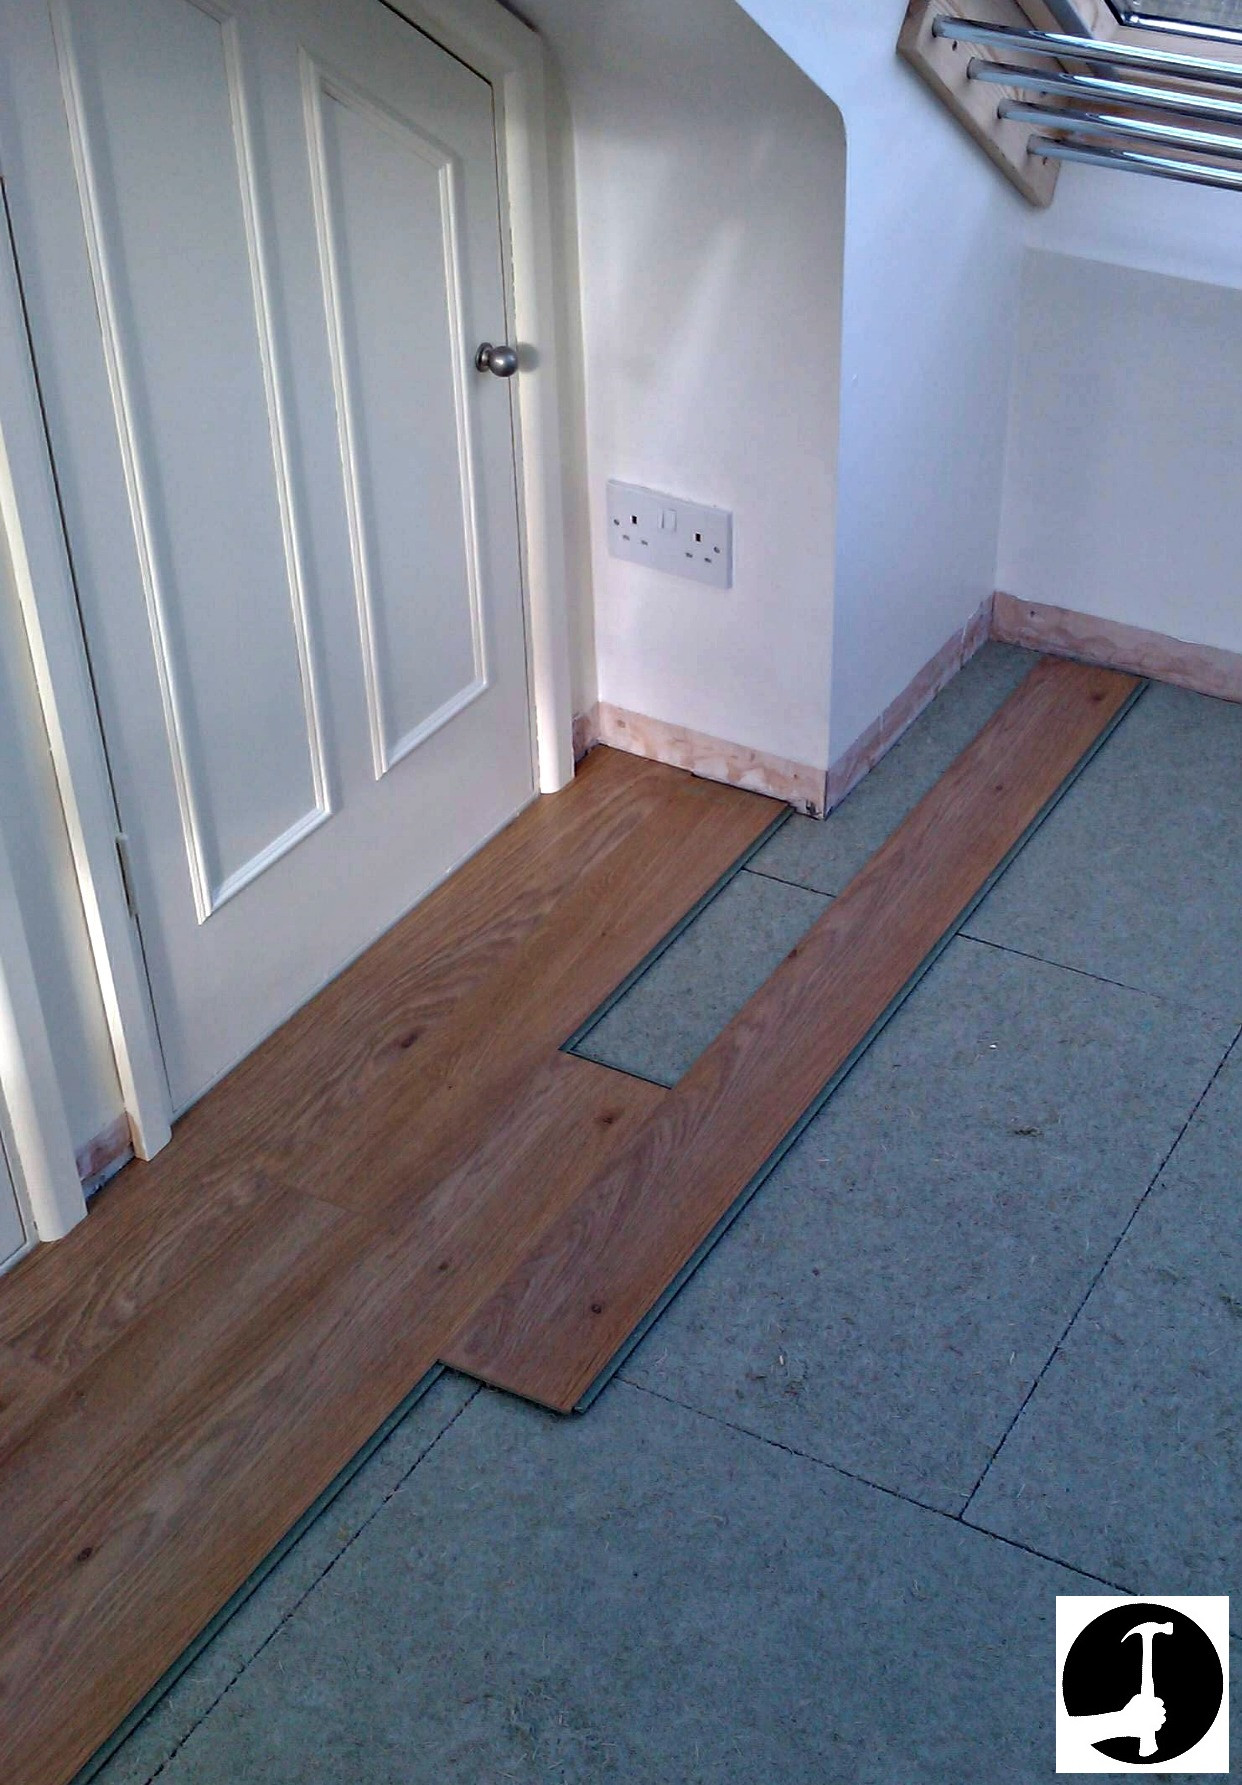 Installing Laminate Hardwood Flooring Of How to Install Laminate Flooring with Ease Glued Glue Less Systems with Setting Out Laminate Flooring